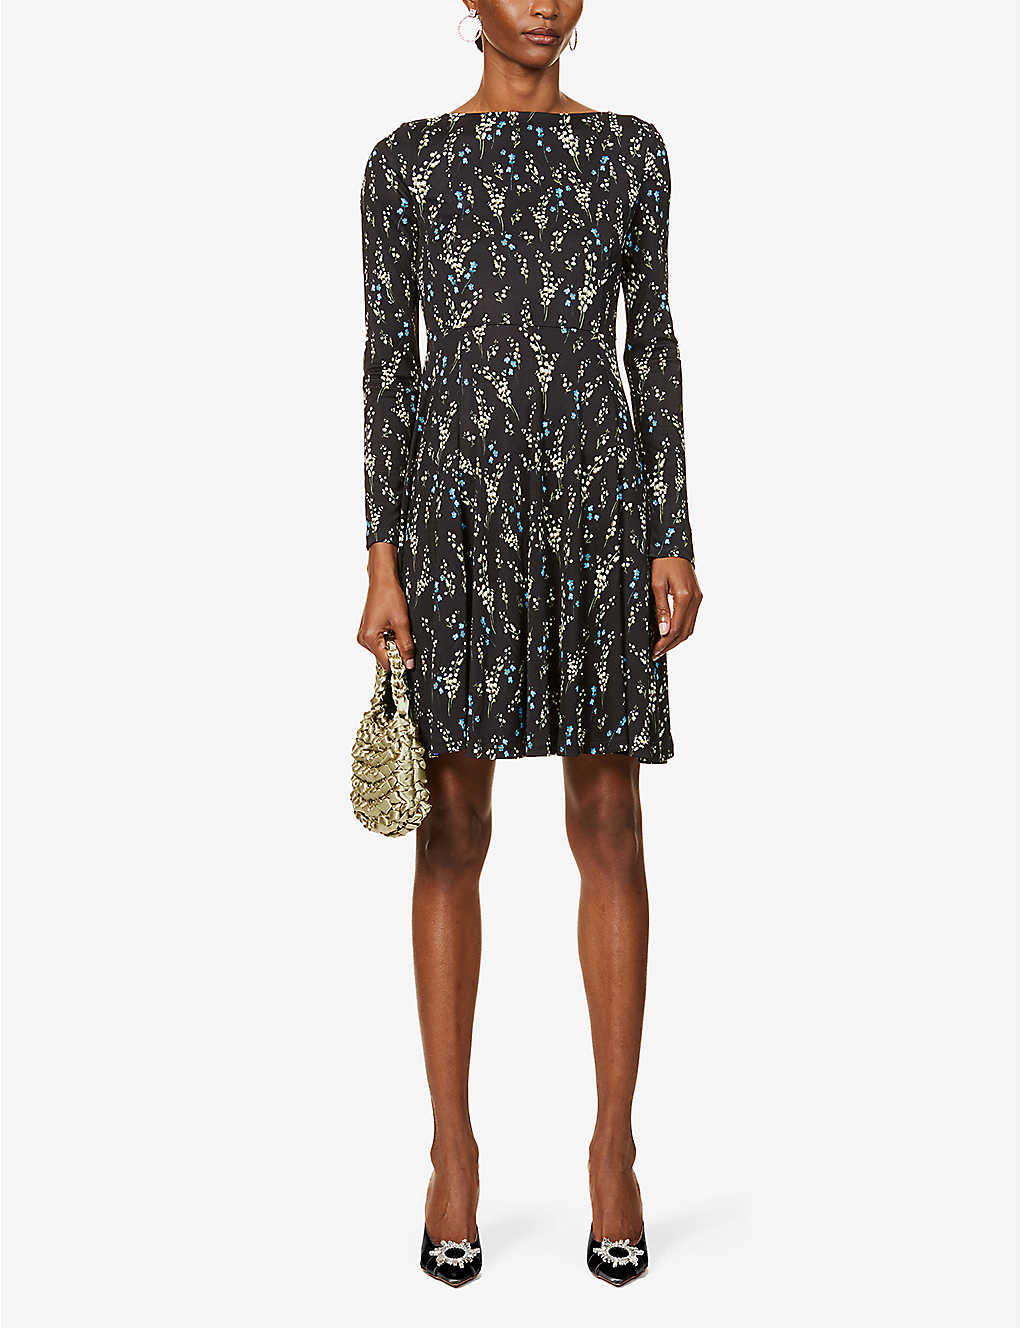 ERDEM Martine Floral-print Woven Mini Dress